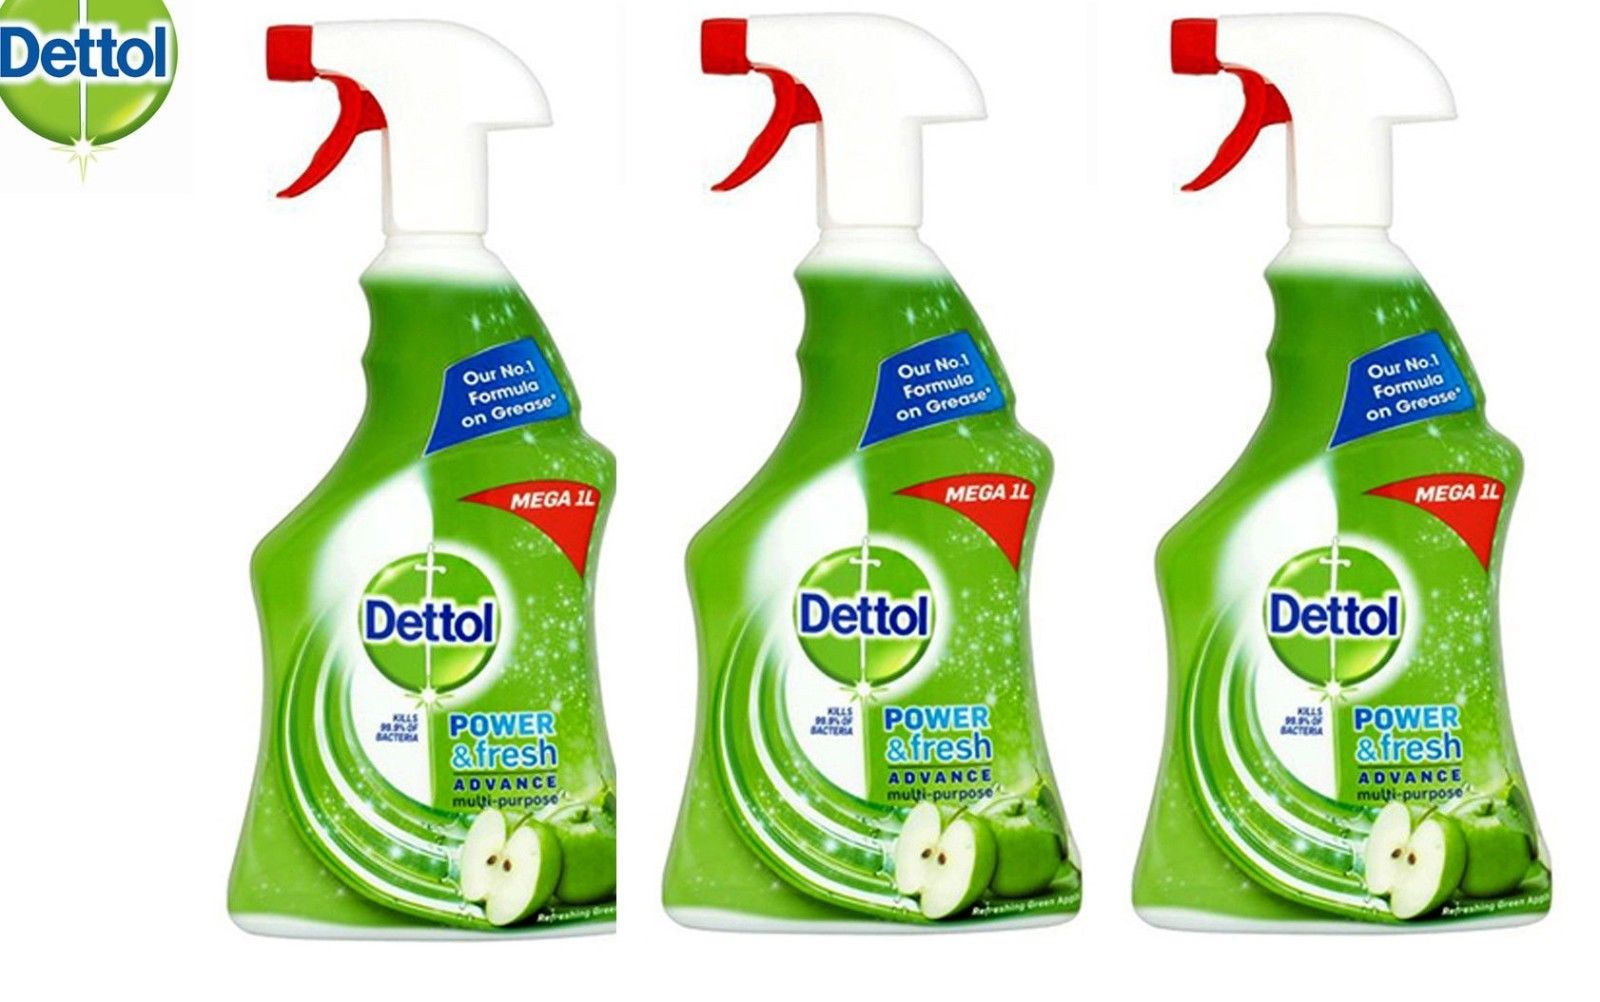 Dettol Power & Fresh Multi-Purpose Cleaner Spray Green Apple